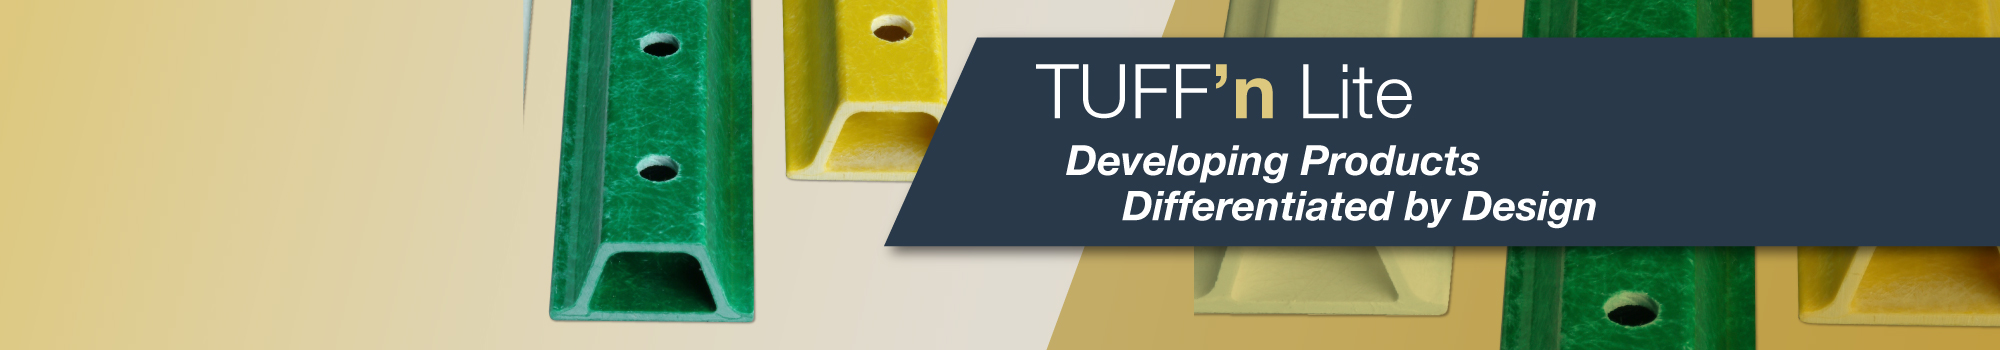 tuff n lite products-Designovations